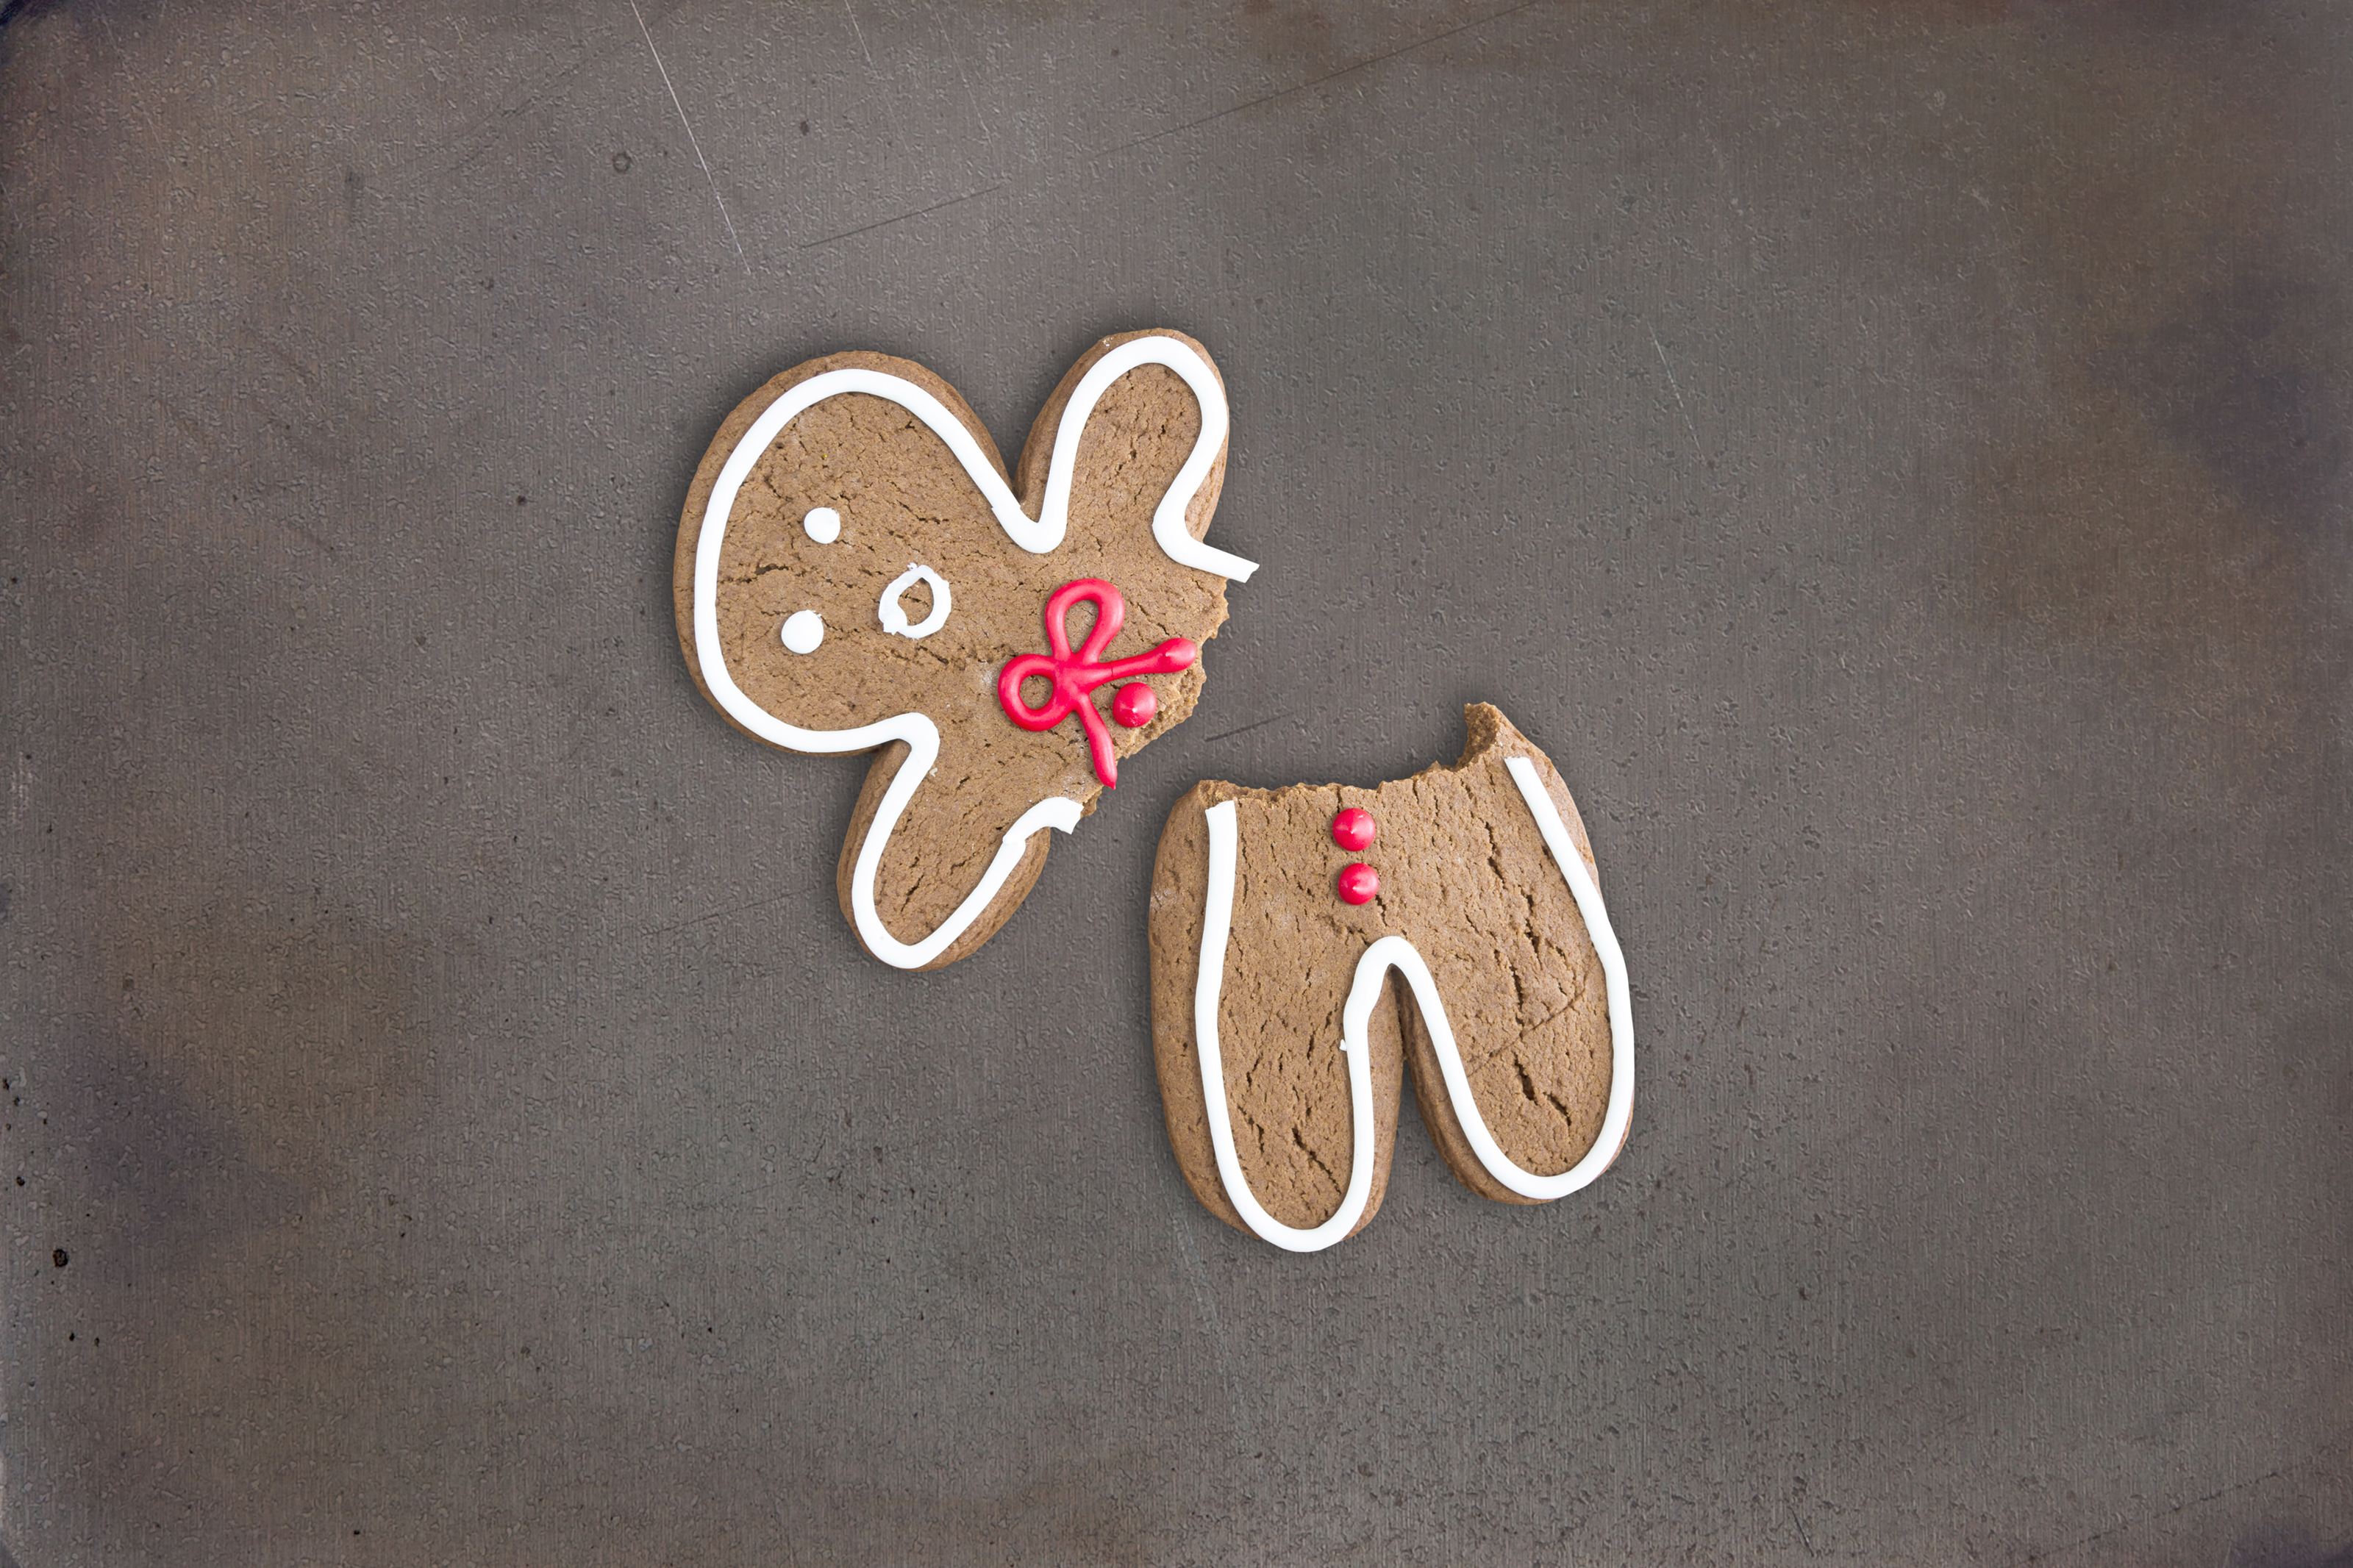 Broken gingerbread cookie on baking tray